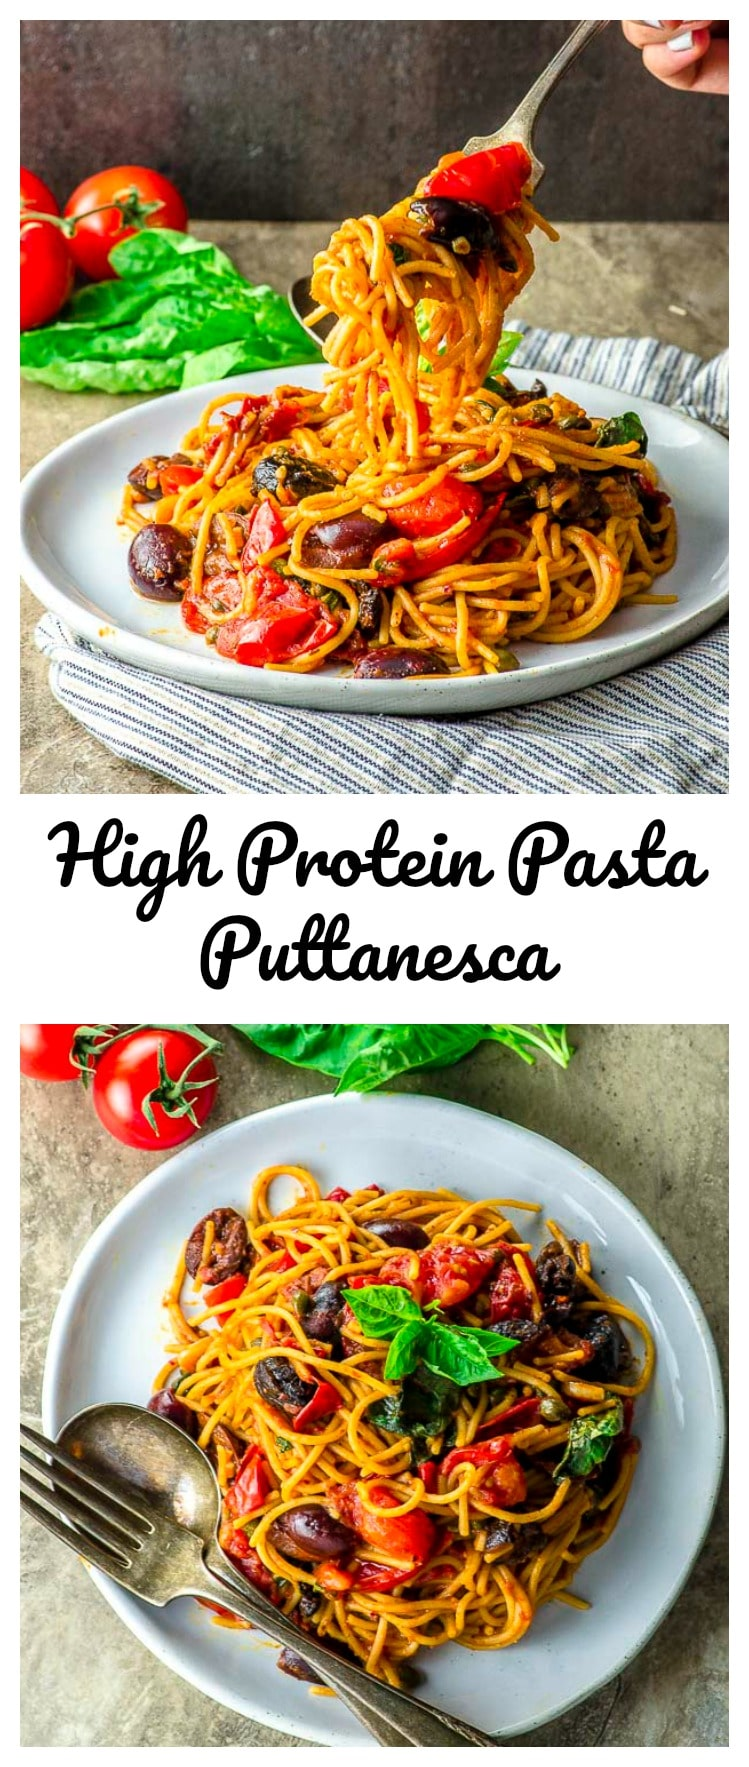 This quick and easy high-protein pasta puttanesca dish evokes the warmth and passion of Sicily without the airfare and crowds and makes an incredible meal when paired with a fresh green salad.@explorecuisine #protein #pasta #vegan #vegetarian #dinner #summer #Ad